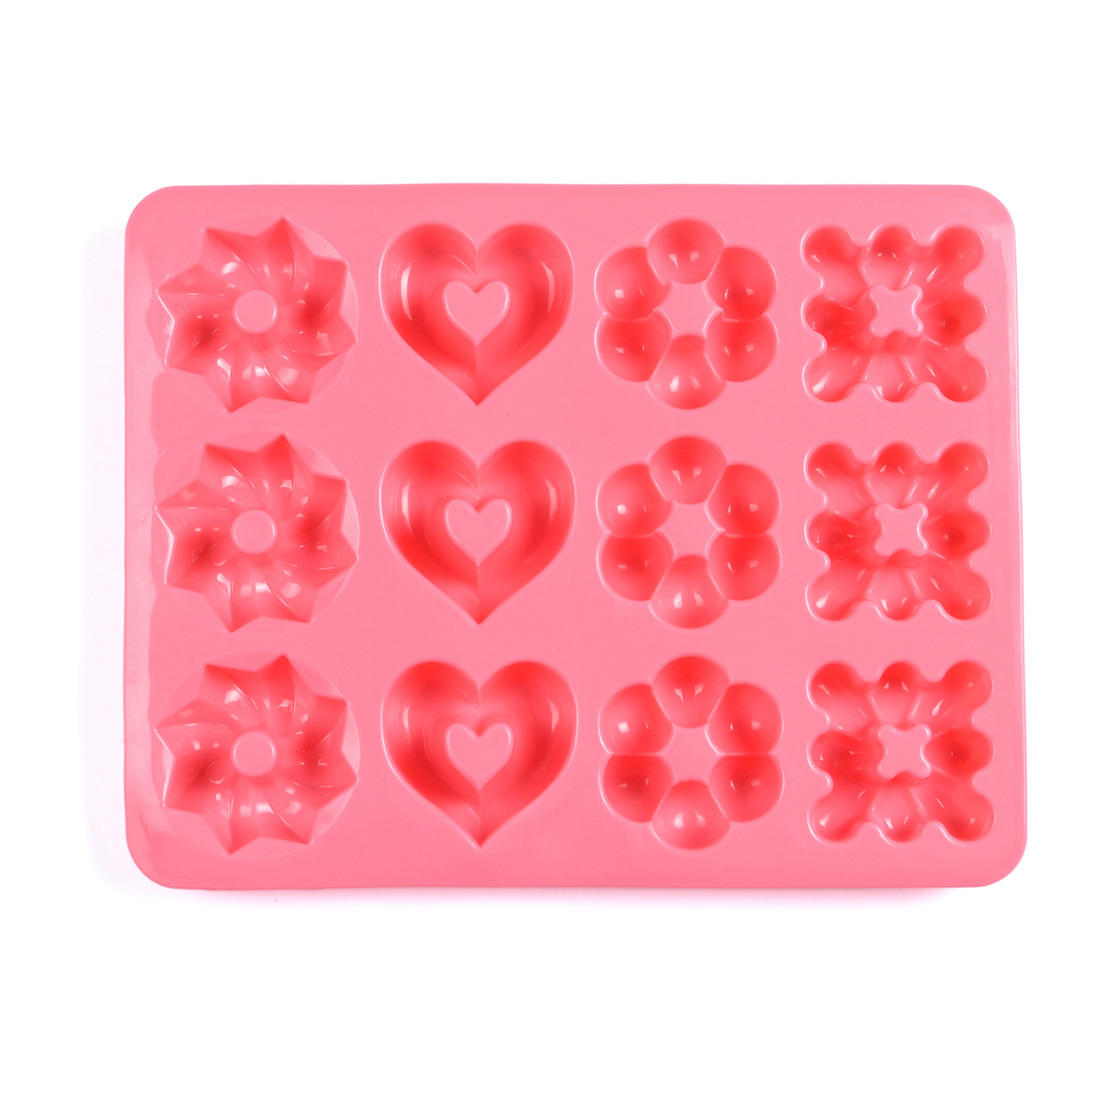 Best Silicone baking mold Dongguan for sale for kids-1